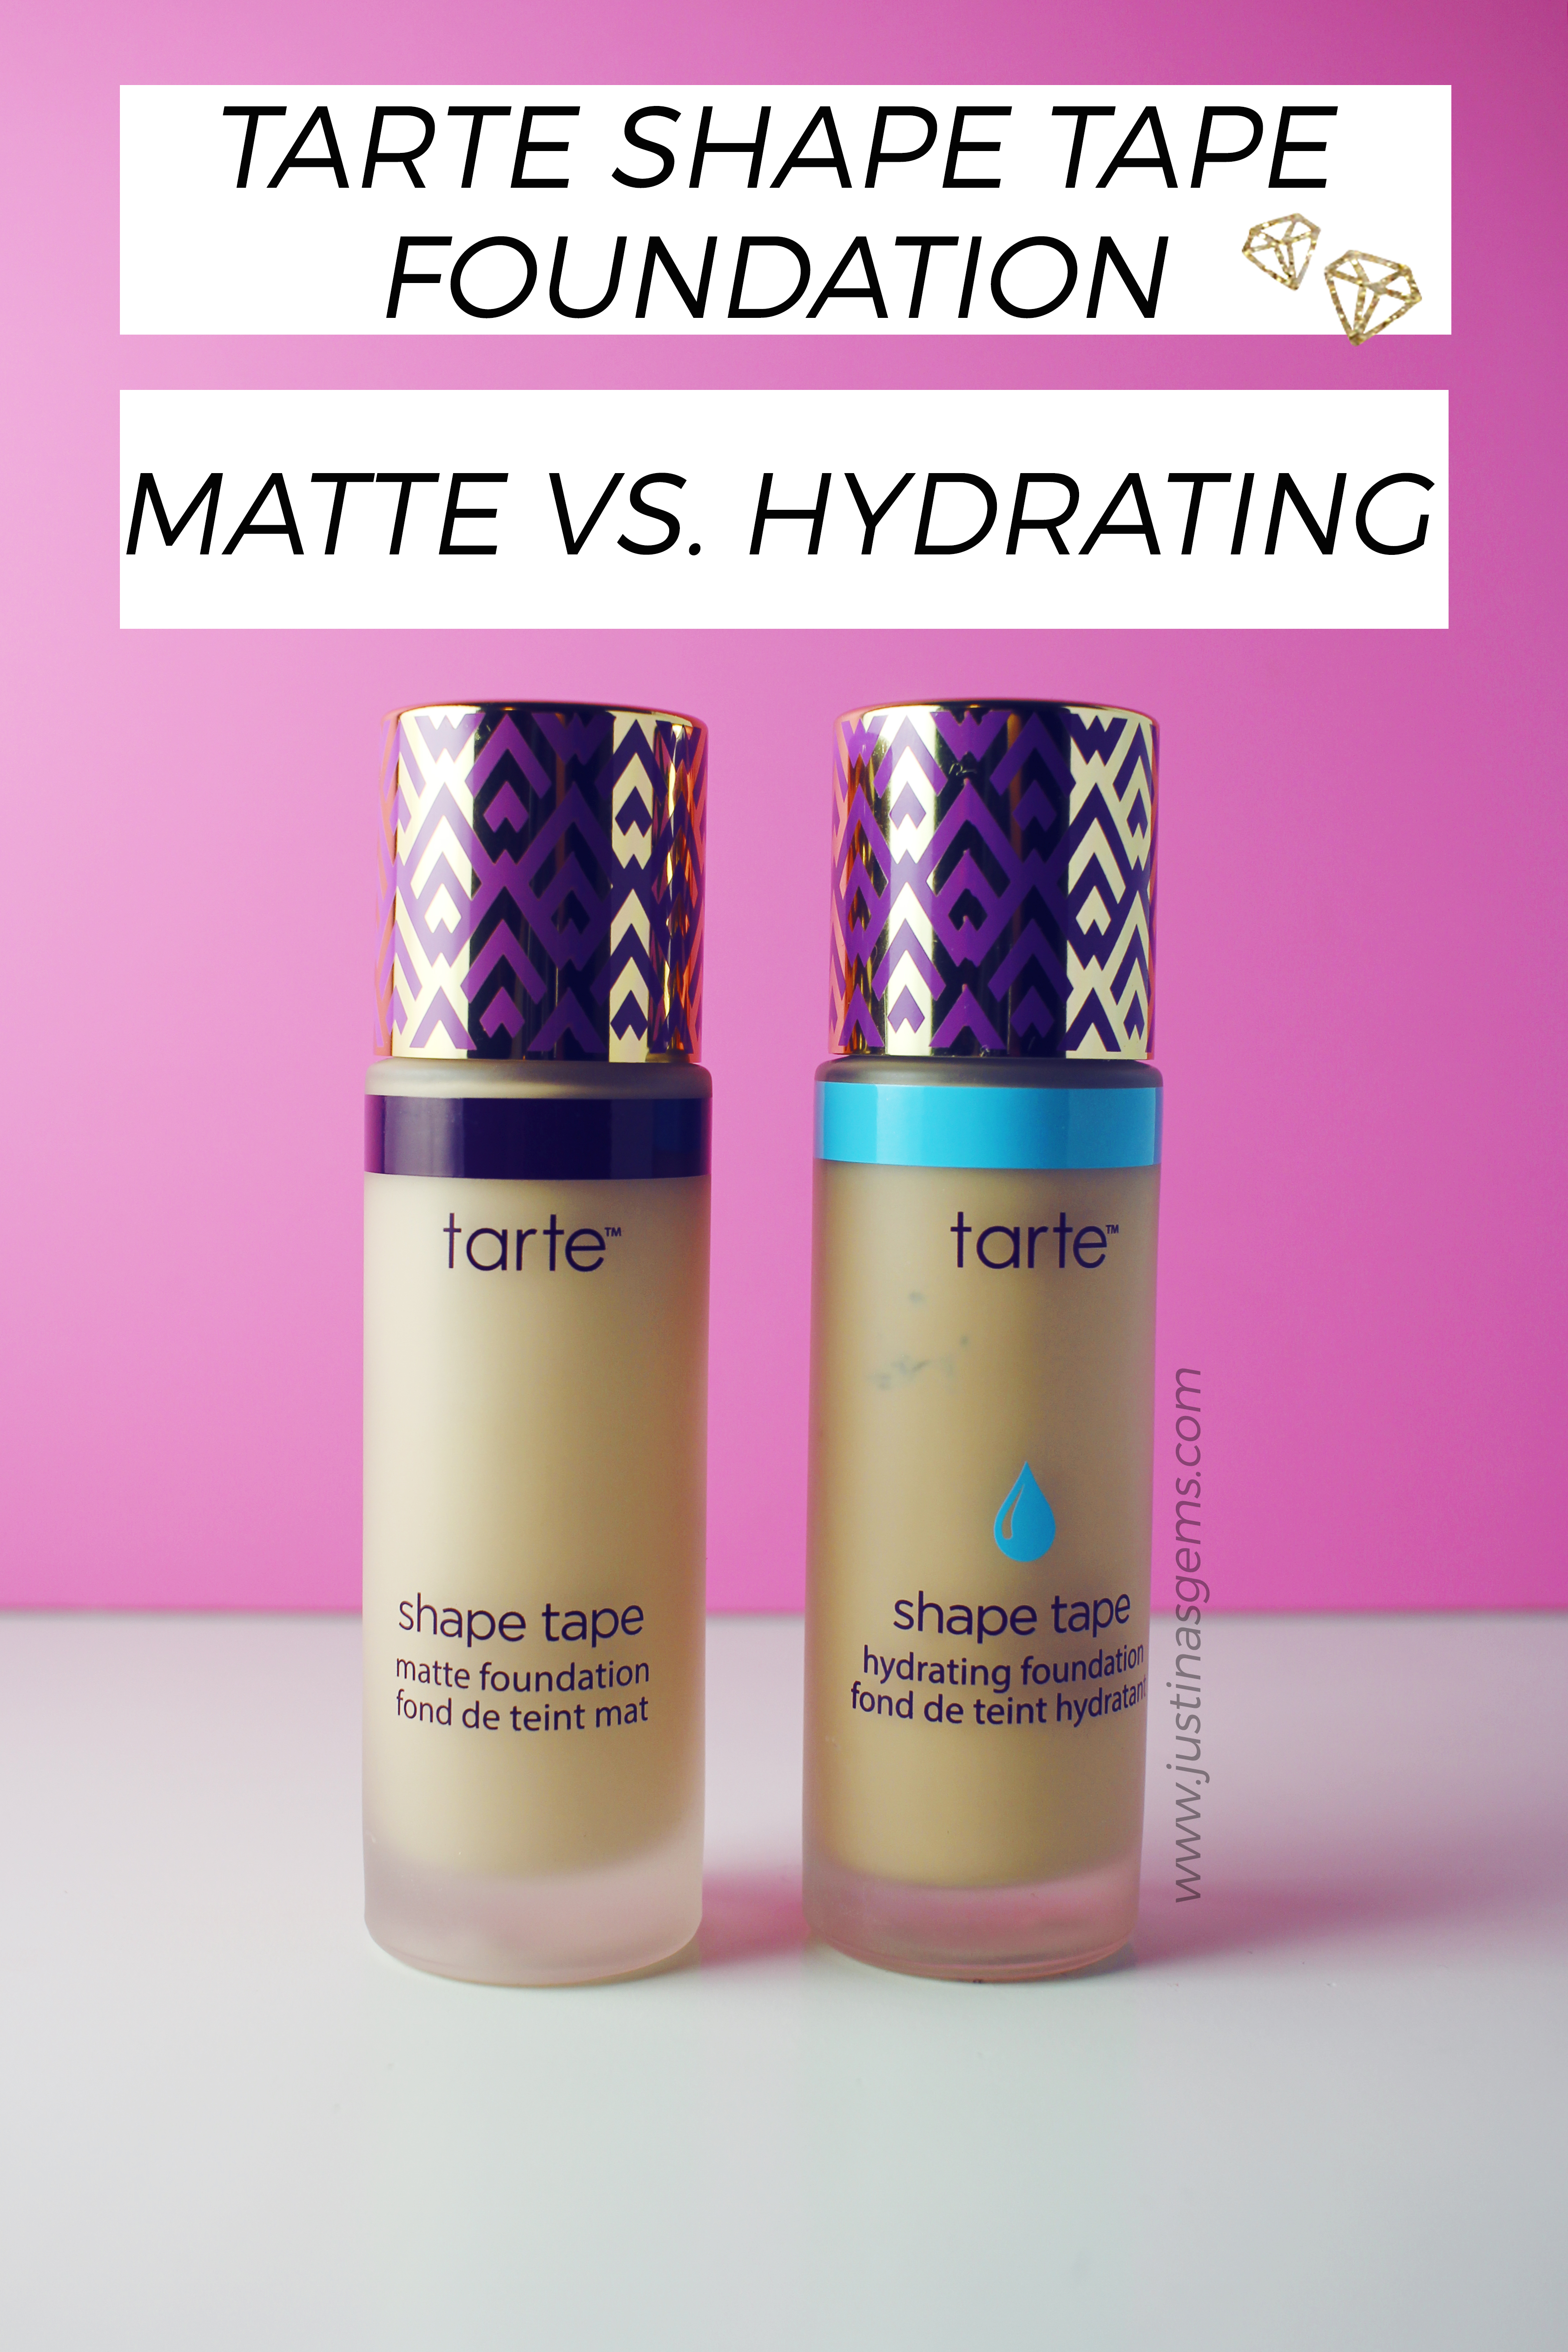 Comparing Shape Tape Matte and Hydrating on Fair Skin